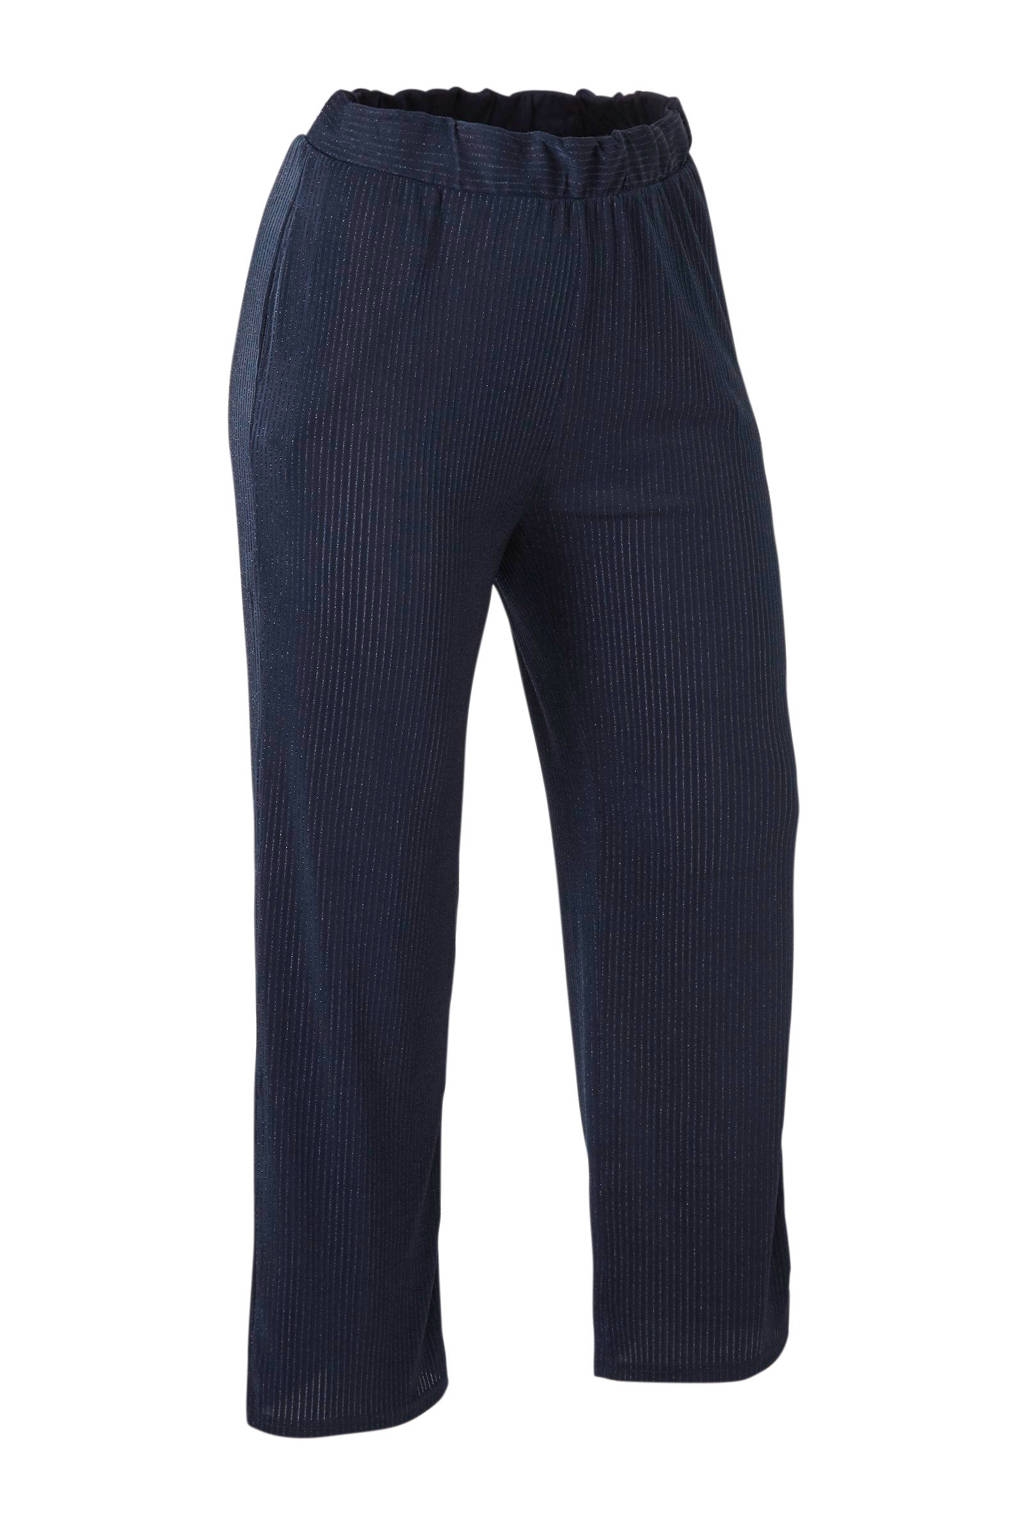 ONLY CARMAKOMA loose fit broek donkerblauw, Donkerblauw